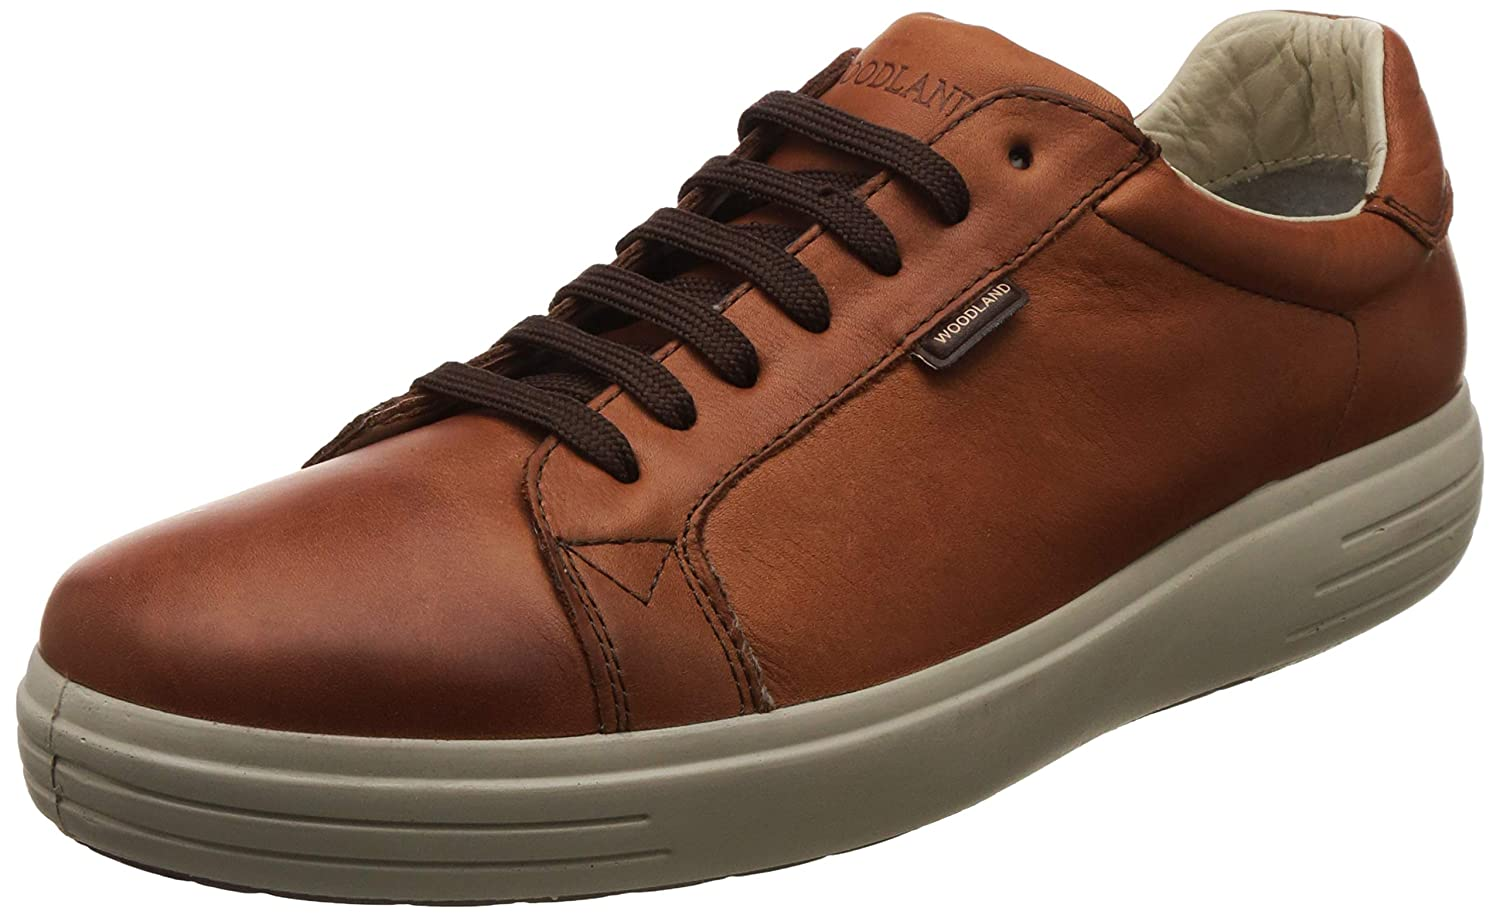 Men Rust Brown Leather Casual Shoes